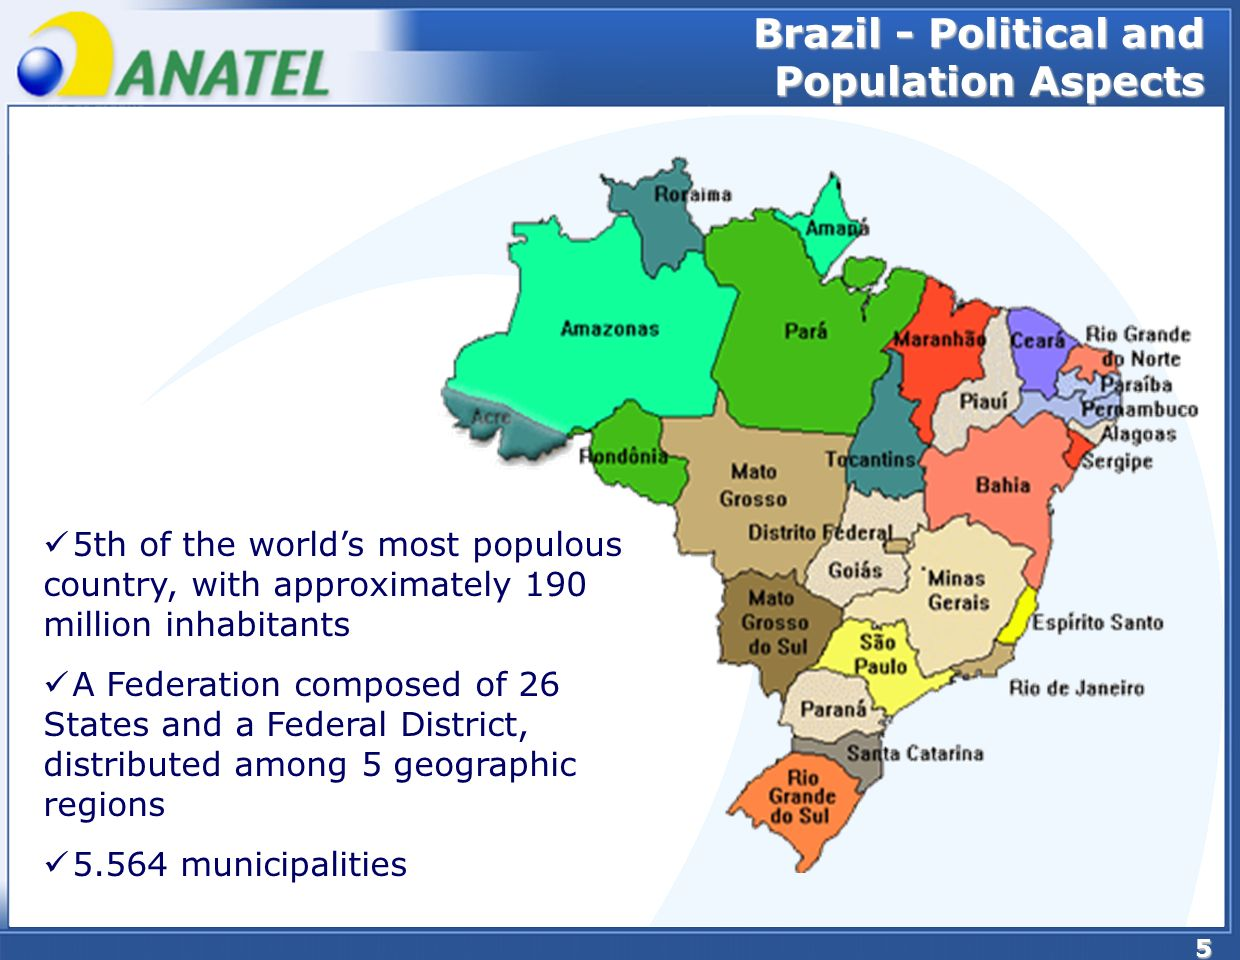 5 5th of the worlds most populous country, with approximately 190 million inhabitants A Federation composed of 26 States and a Federal District, distributed among 5 geographic regions municipalities Brazil - Political and Population Aspects